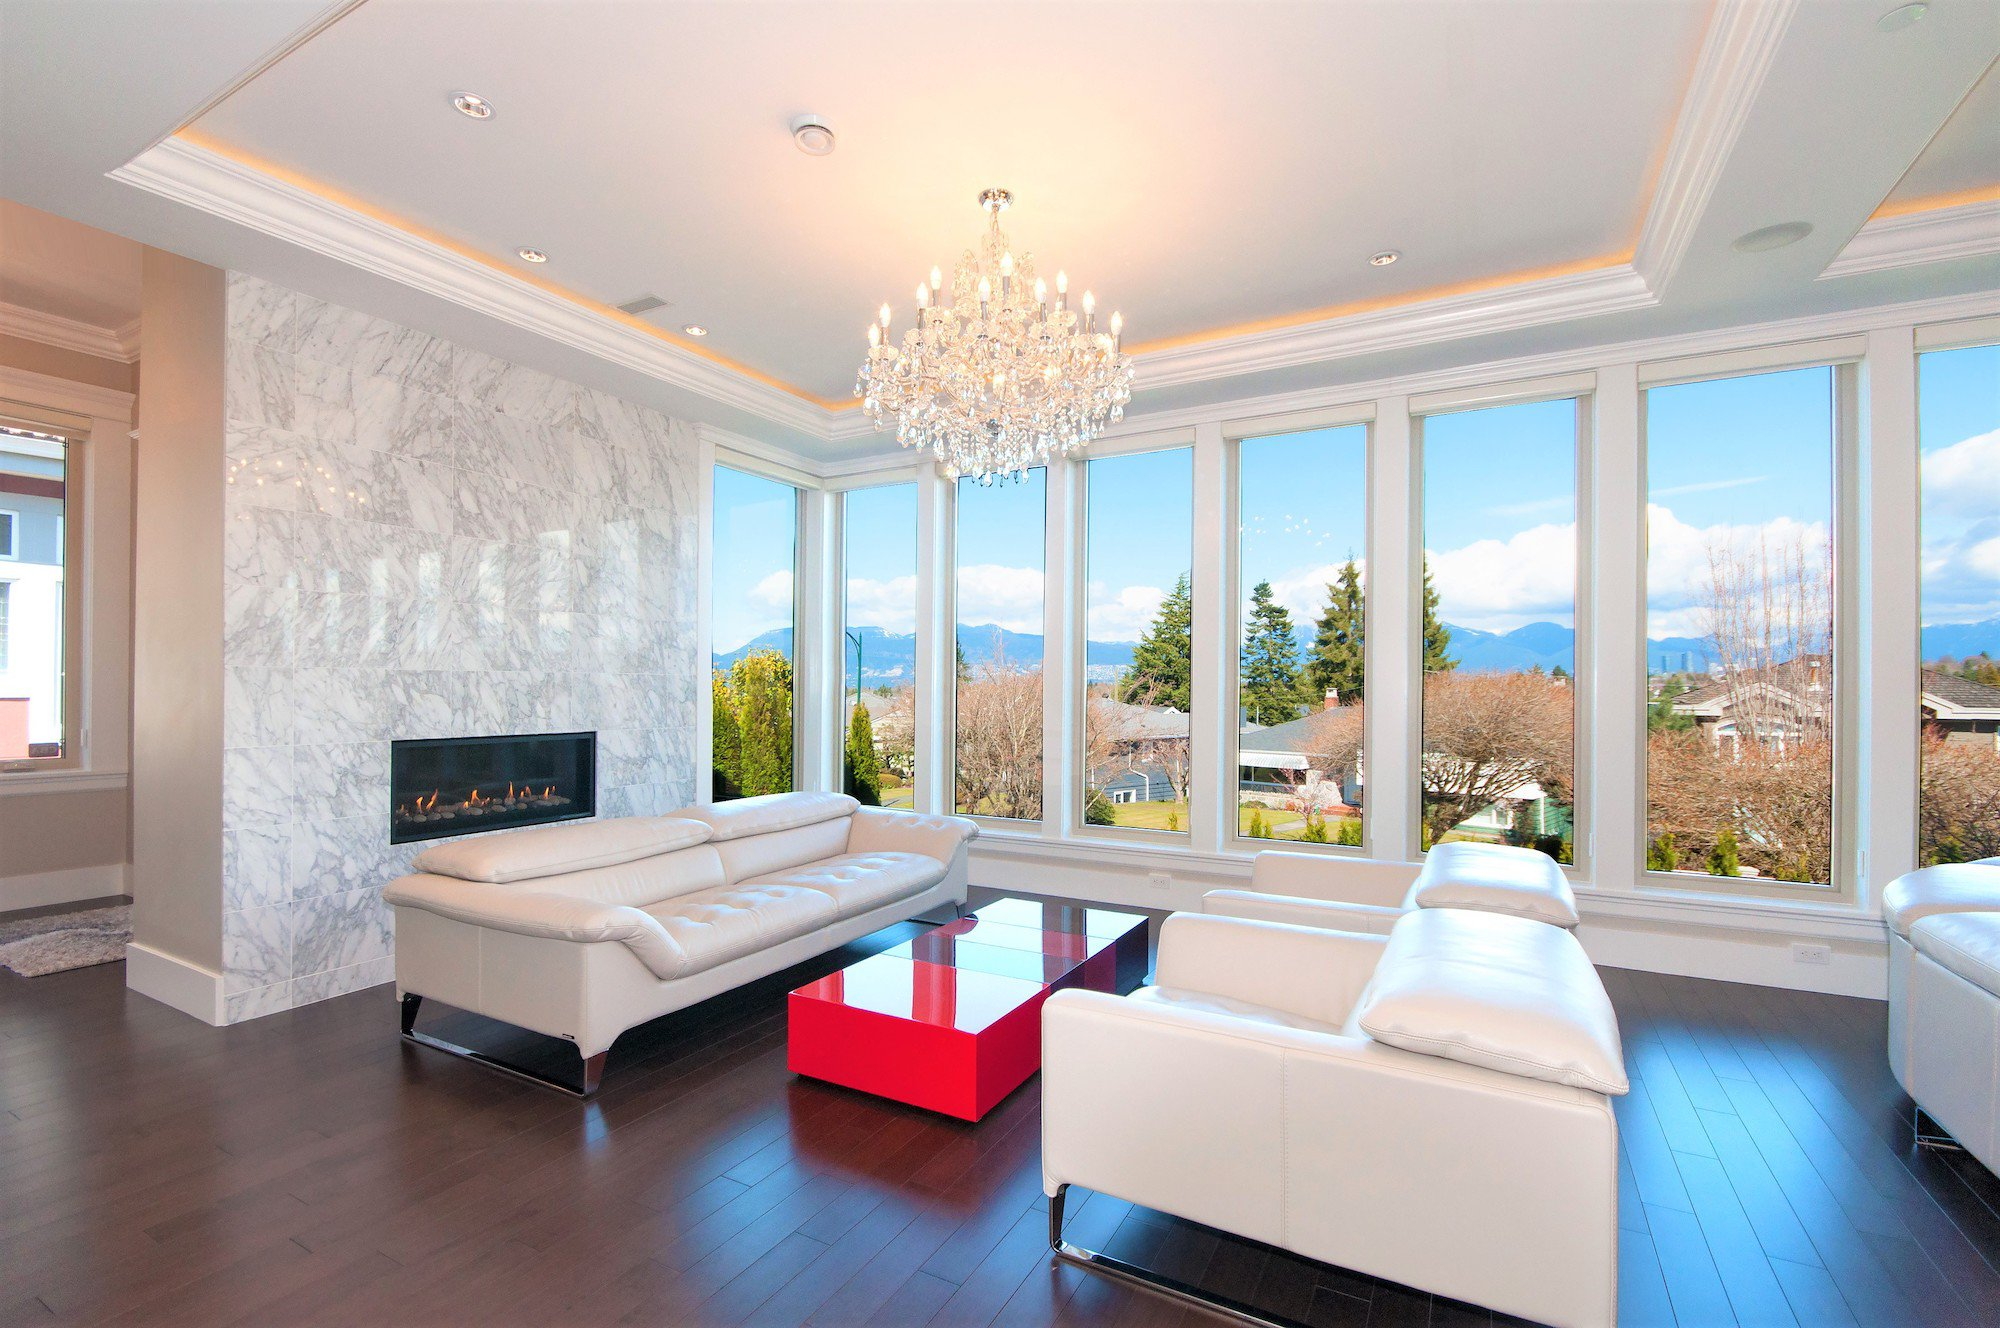 Photo 7: Photos: 2588 Edgar Crescent in Vancouver: Quilchena House for sale (Vancouver West)